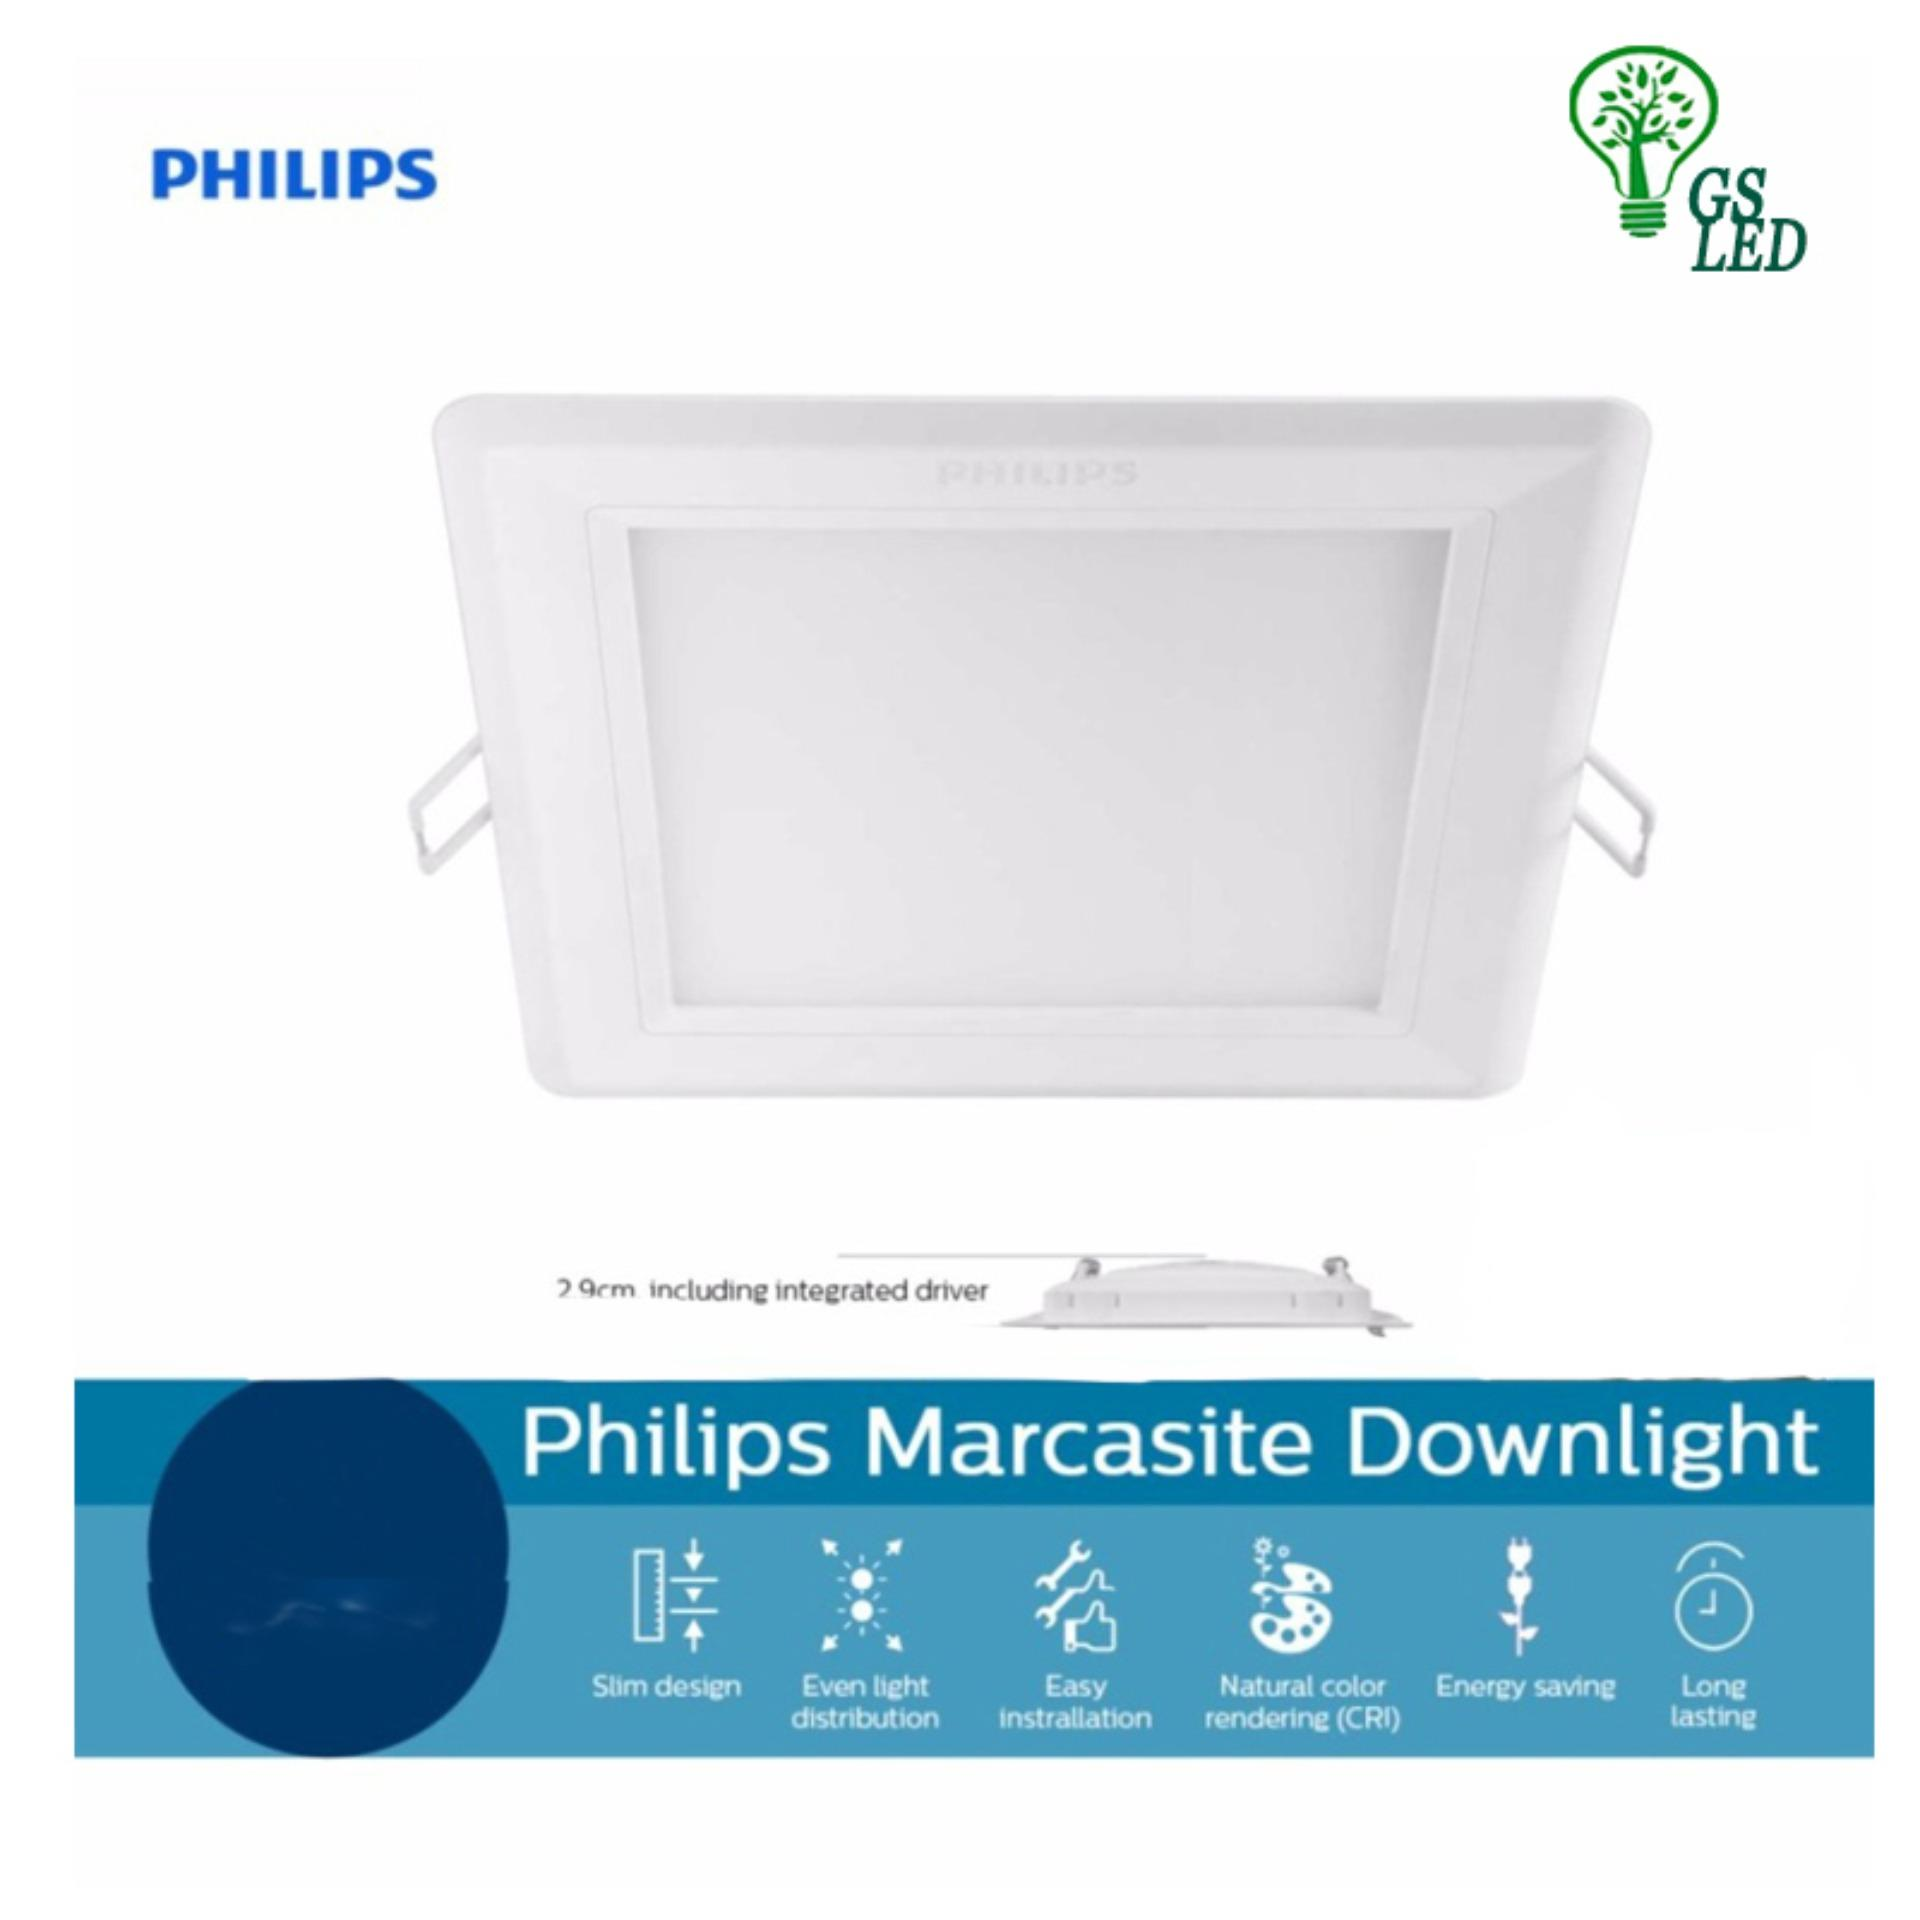 (2 packs) Philips 59527 Marcasite 12W LED Downlight (Square) 3000k Warm White